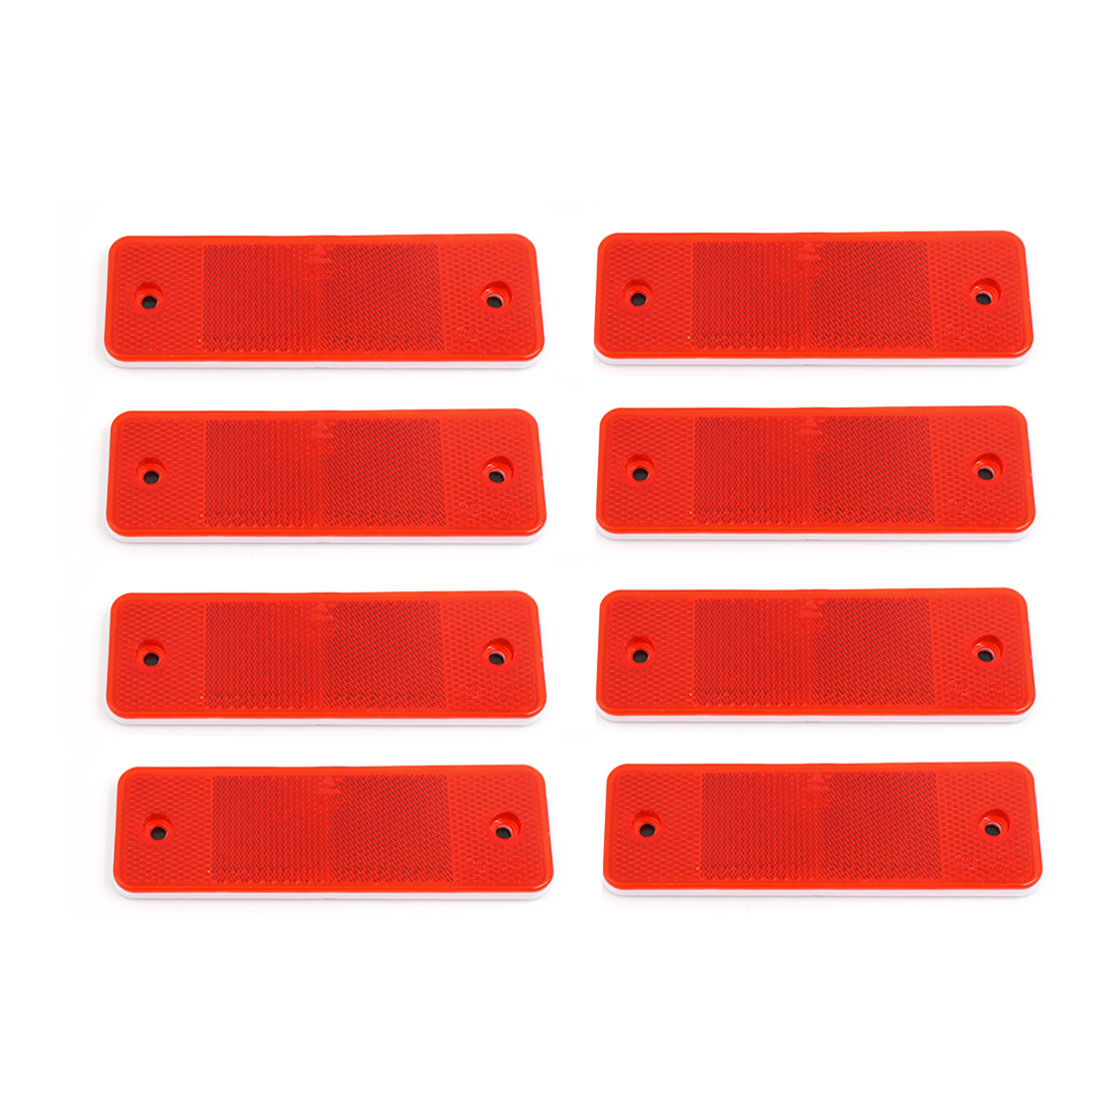 8 Pcs Red Plastic Rectangular Stick-on Car Reflector Reflective Sticker Decor